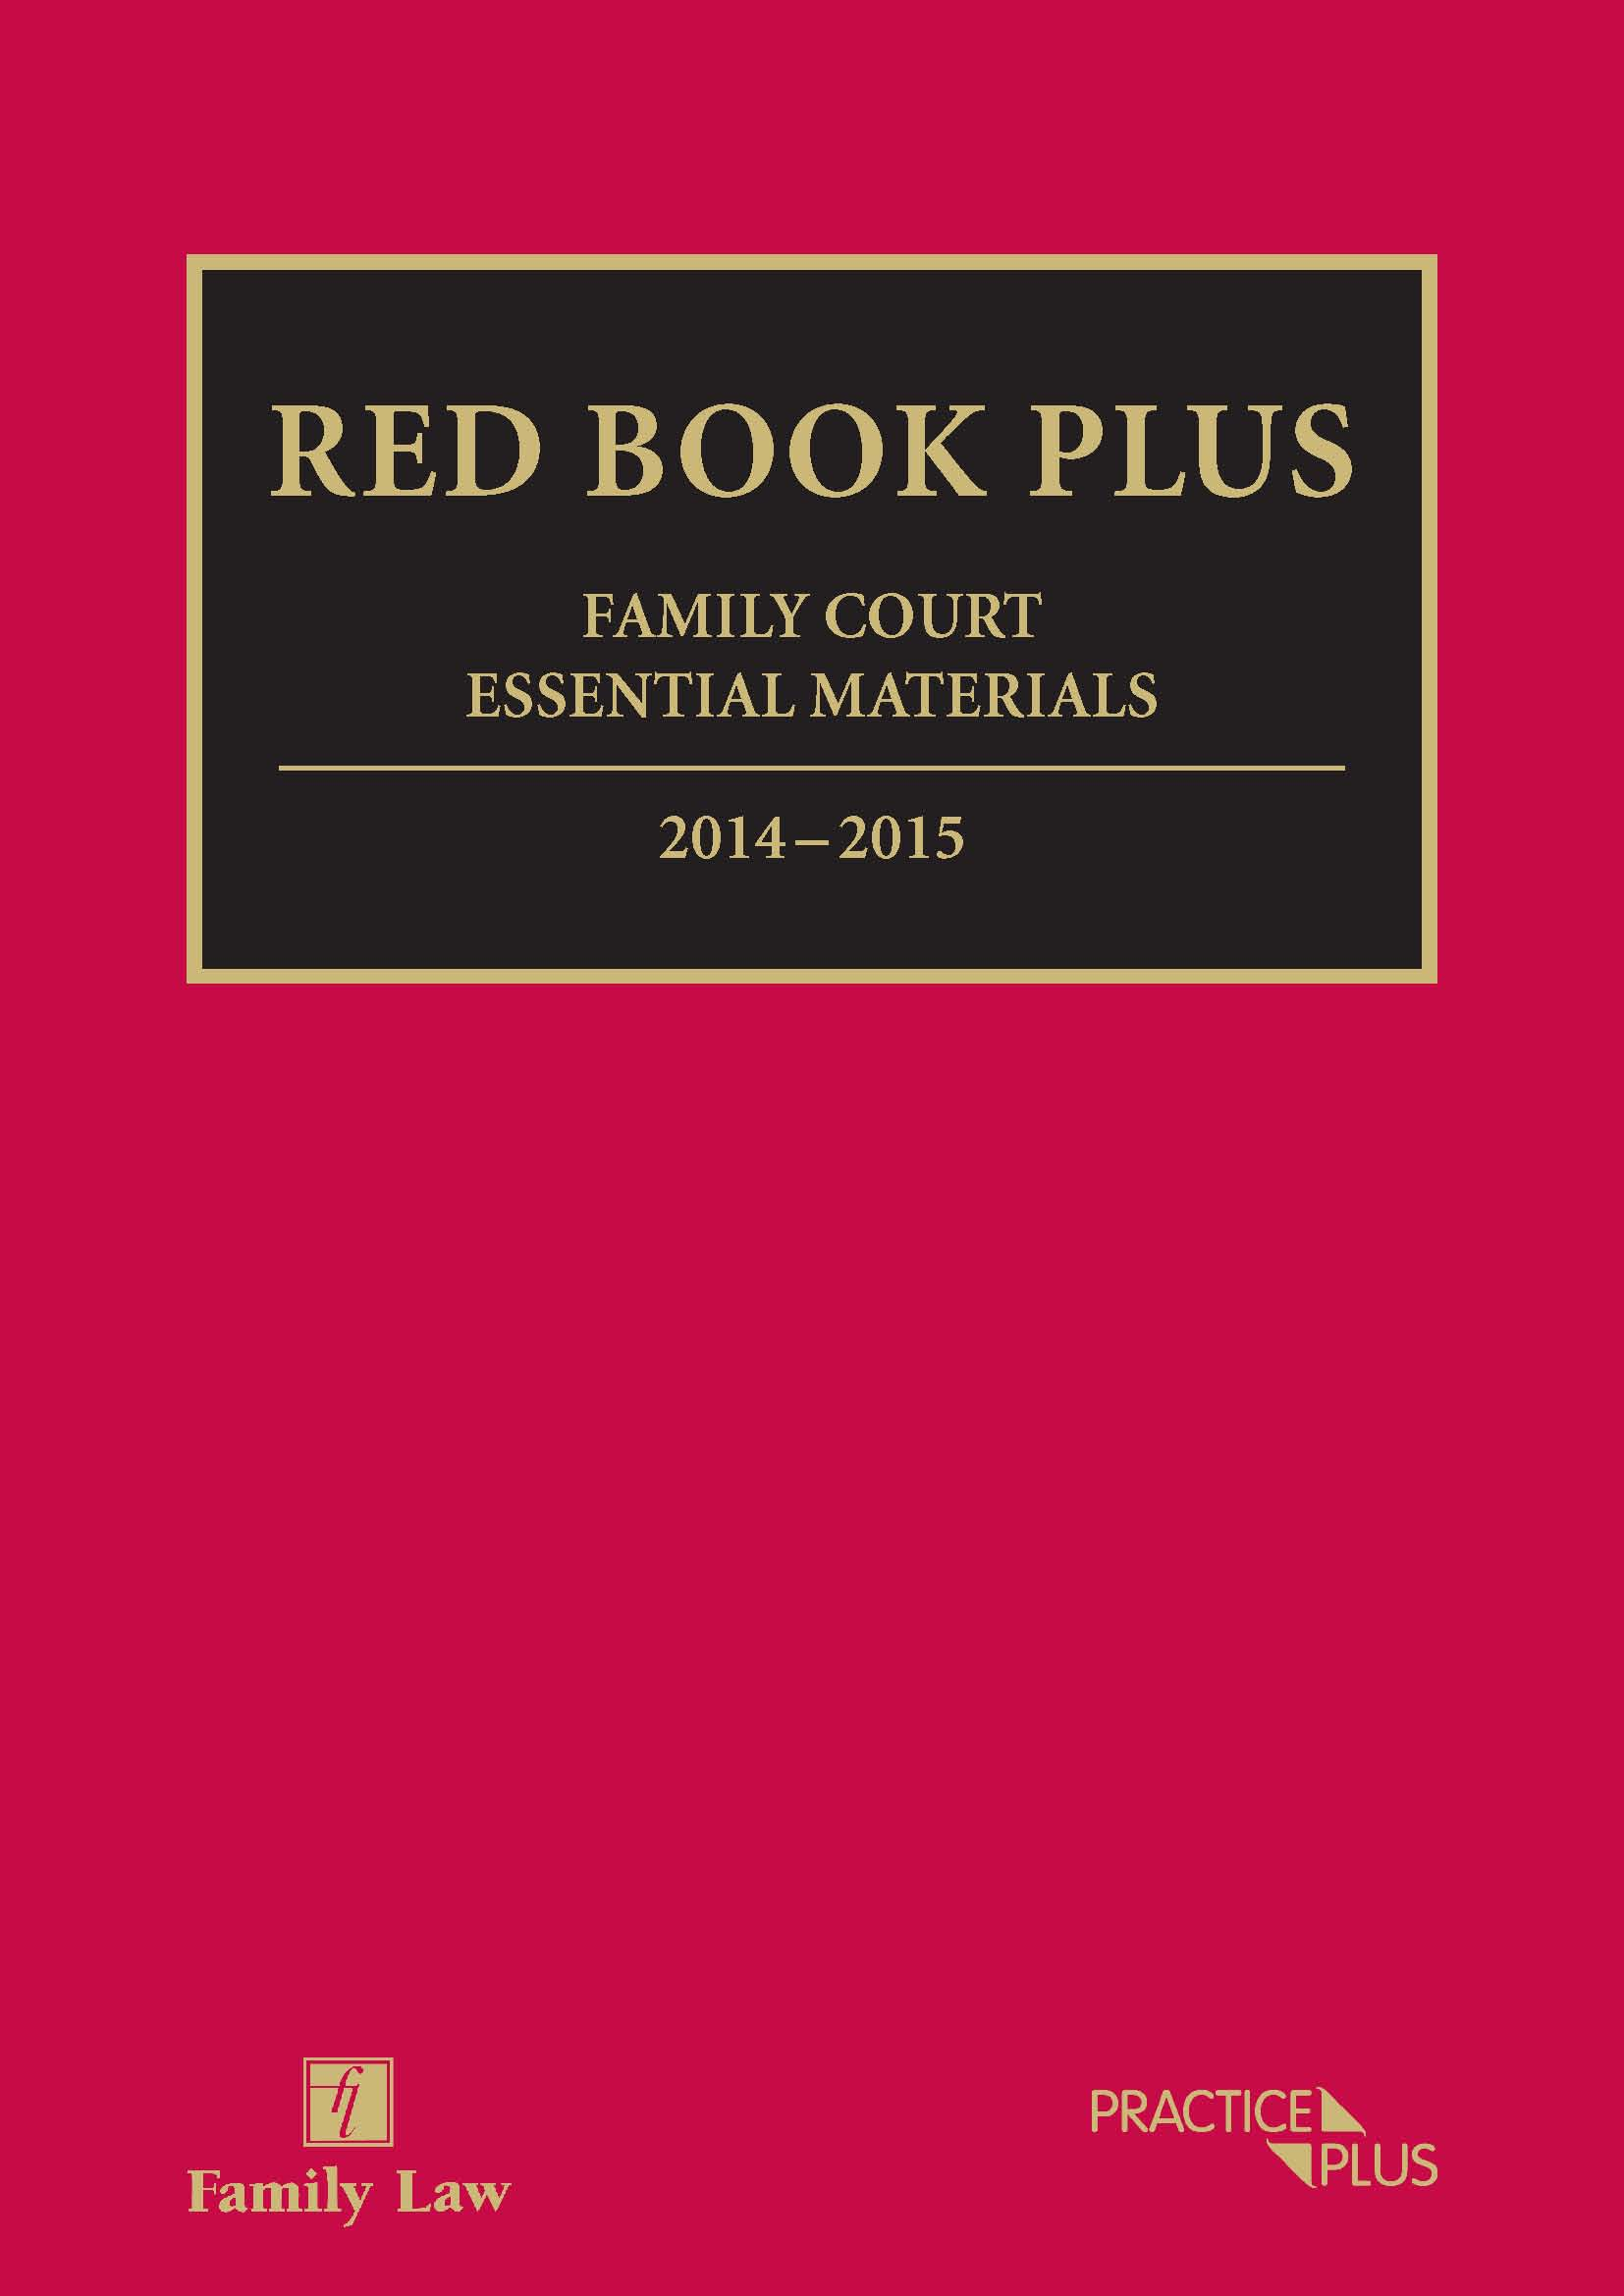 Red Book Plus